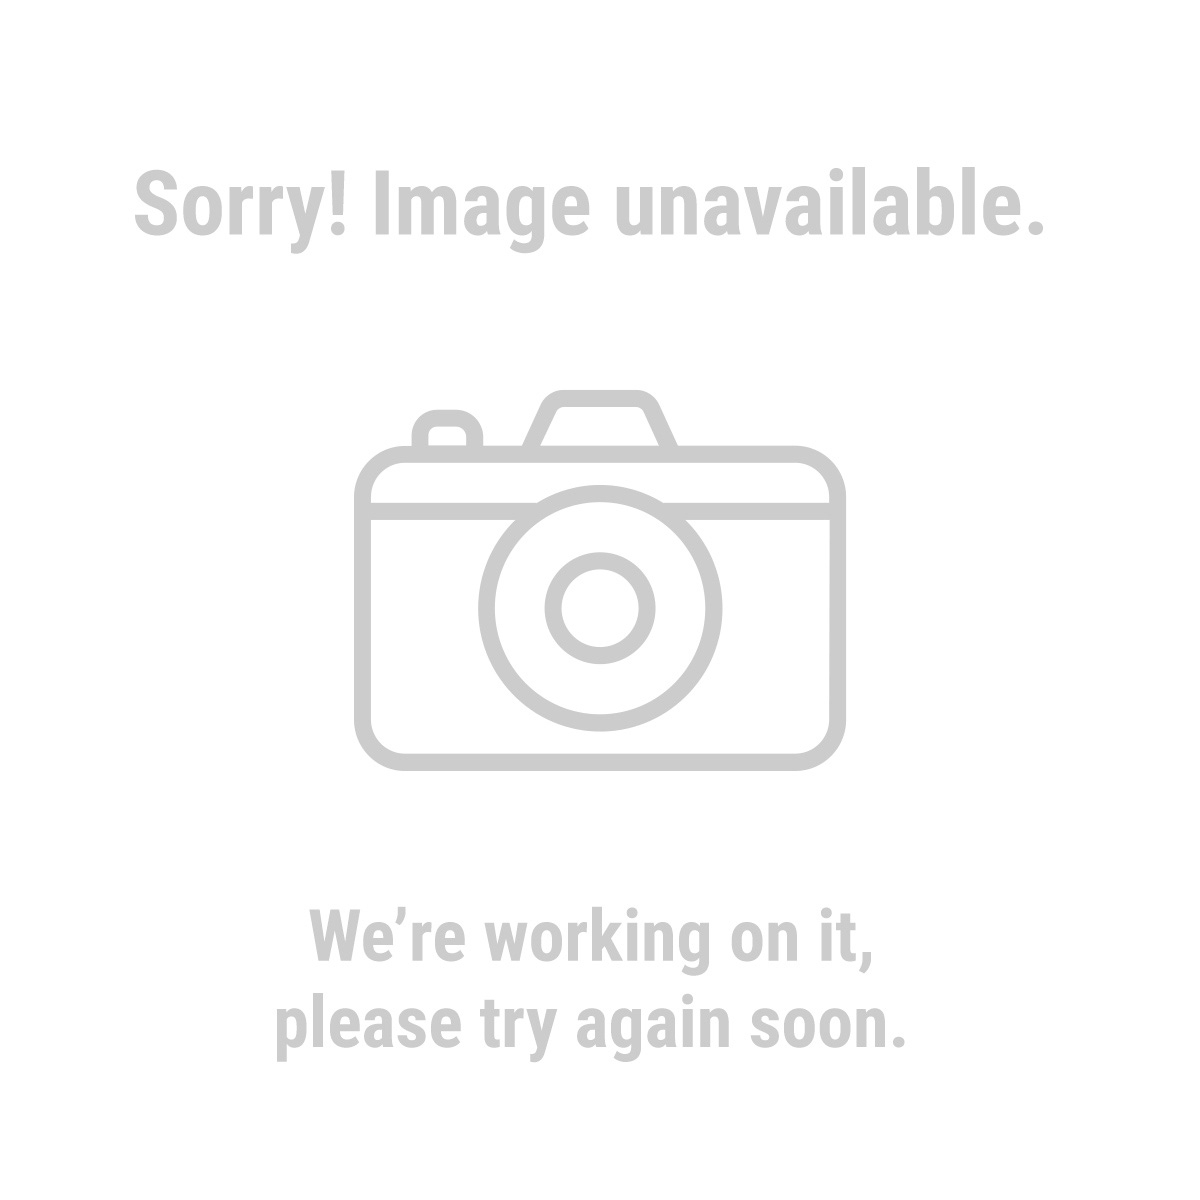 "Big Top 92112 100 Ft. x 1/4"" Diamond Braid Rope"